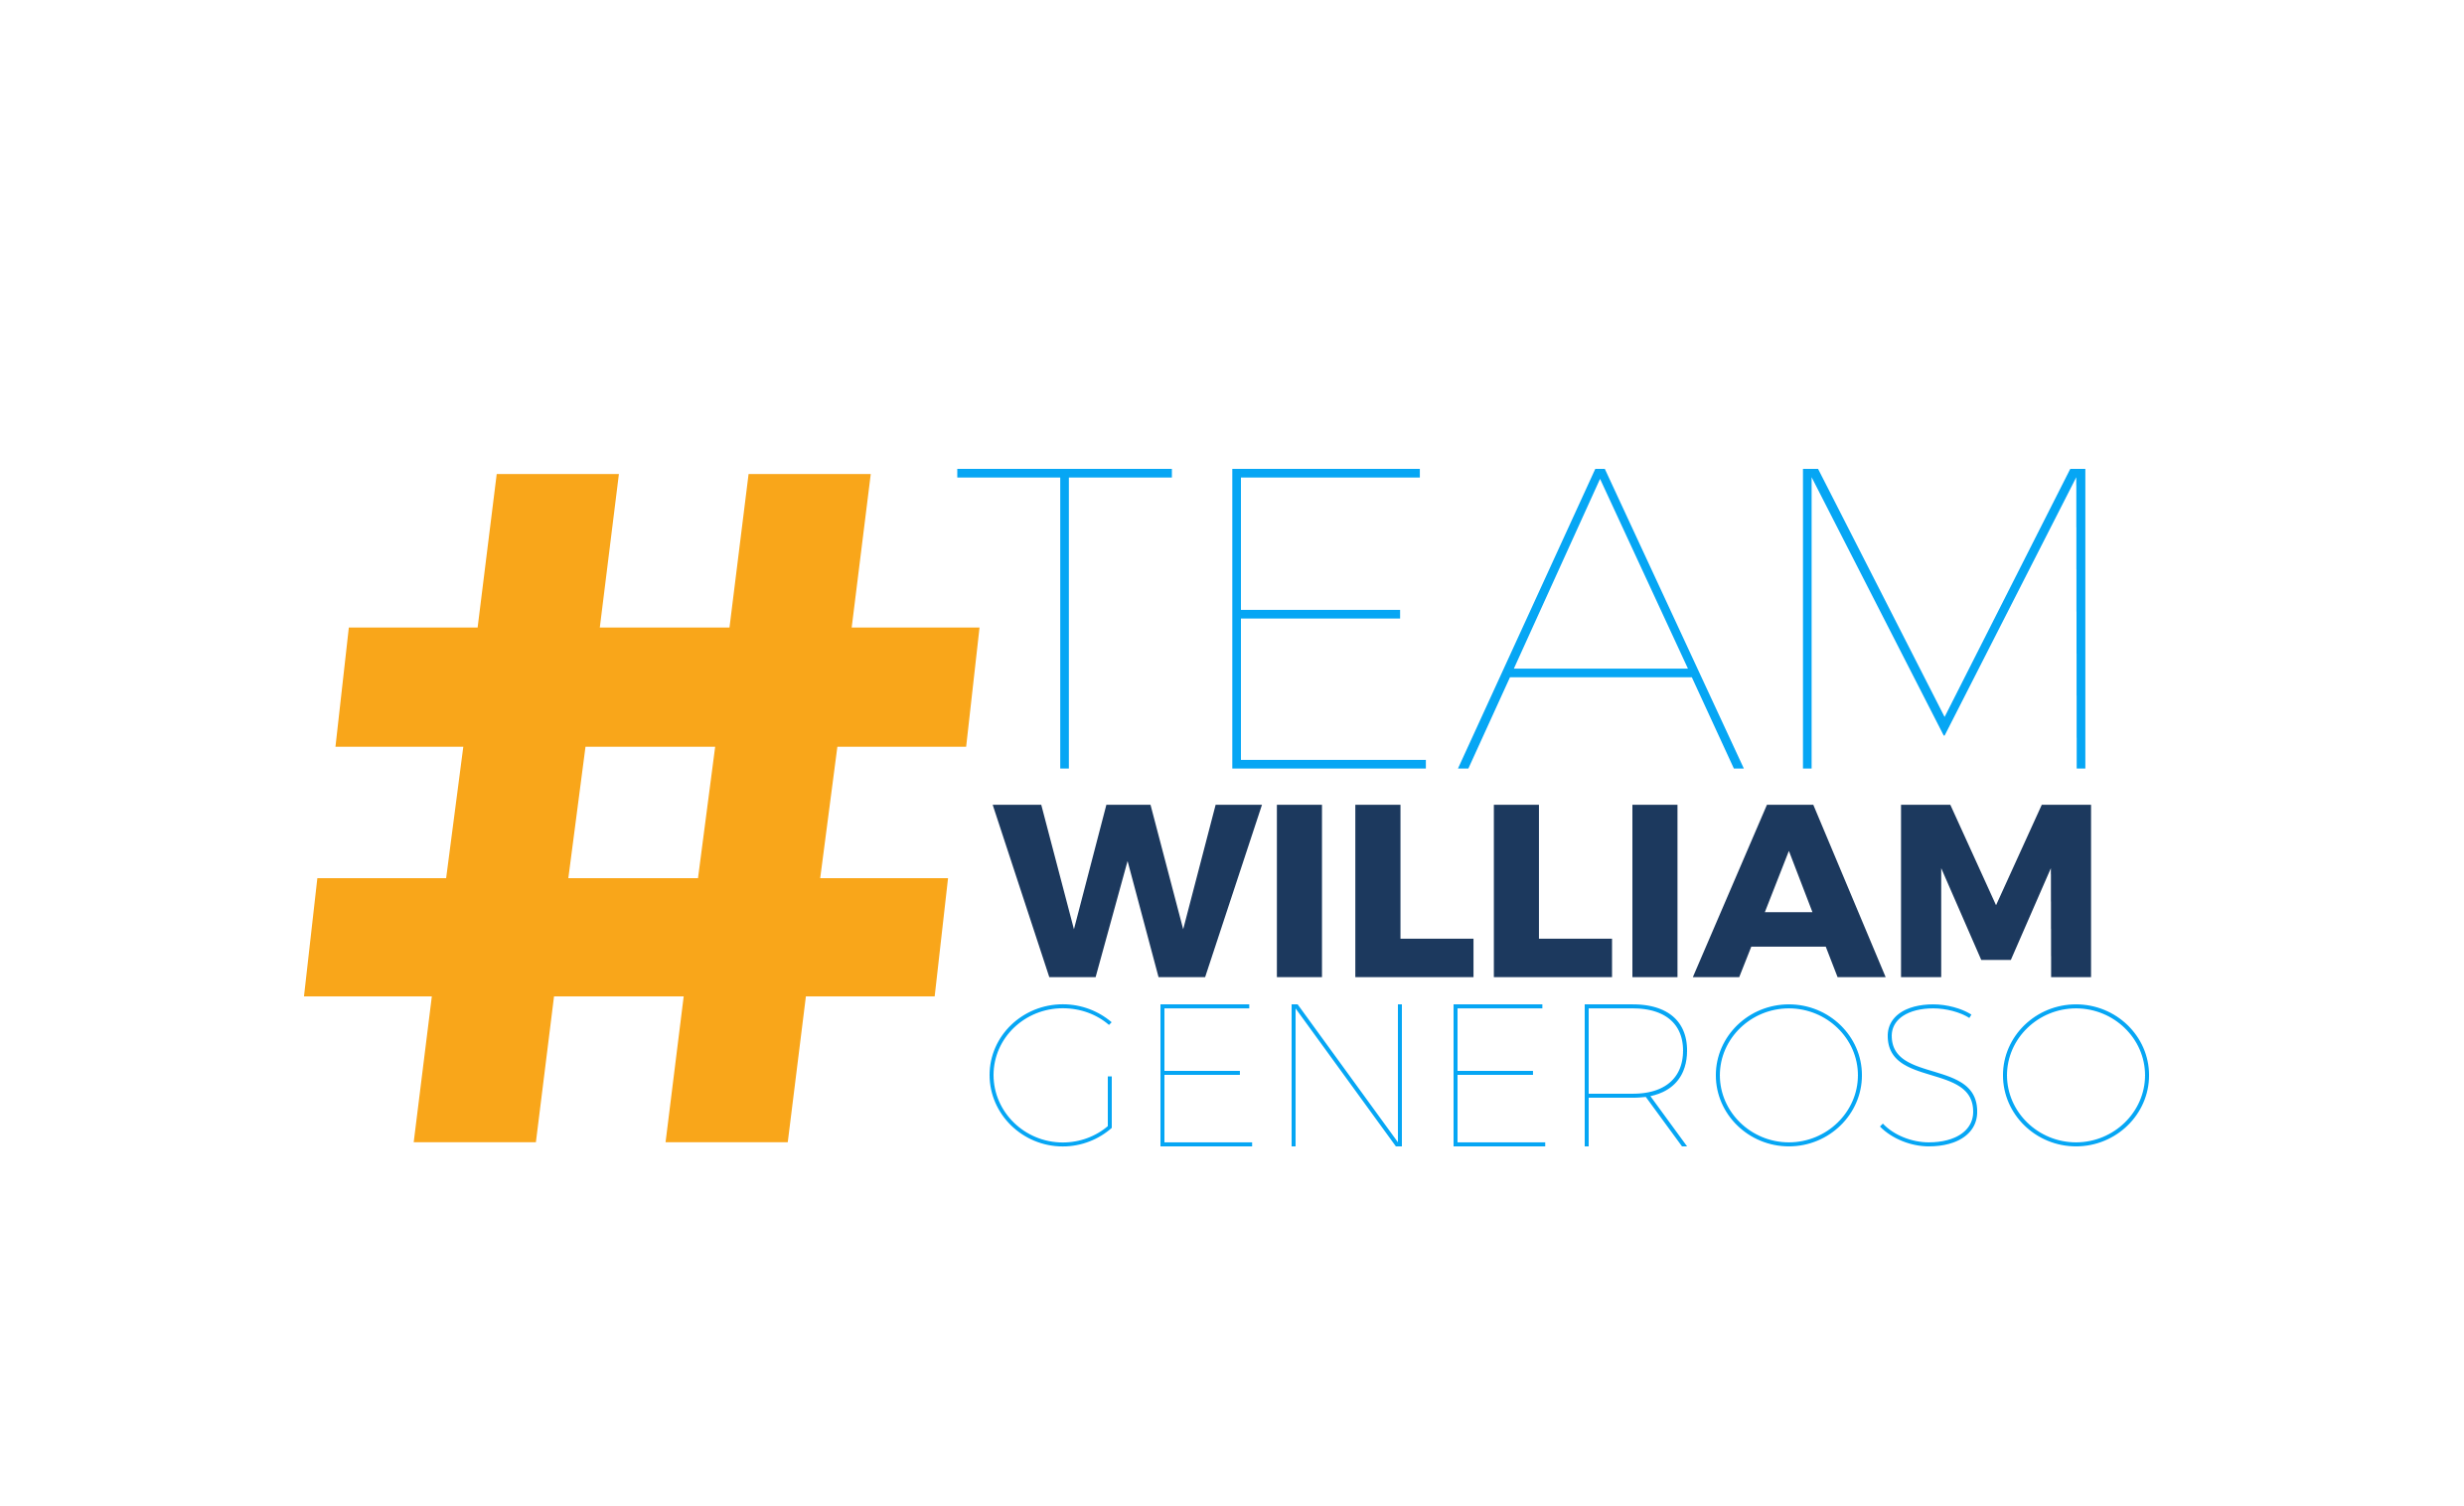 Team William Generoso